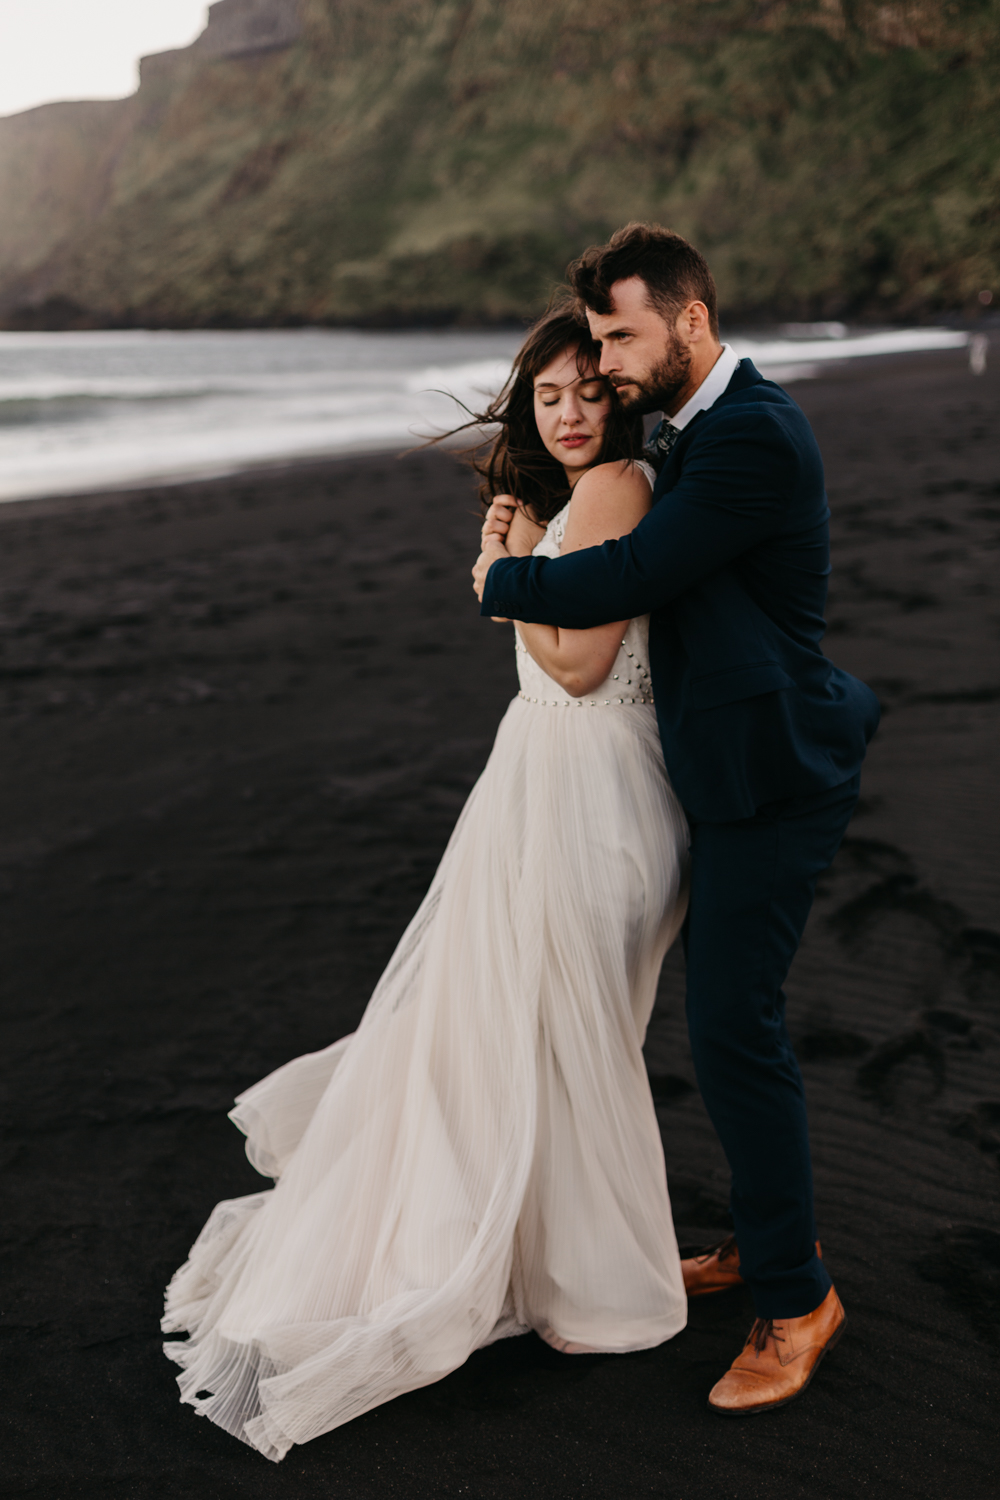 anna szczekutowicz iceland wedding photogapher elopement photographer-109.jpg